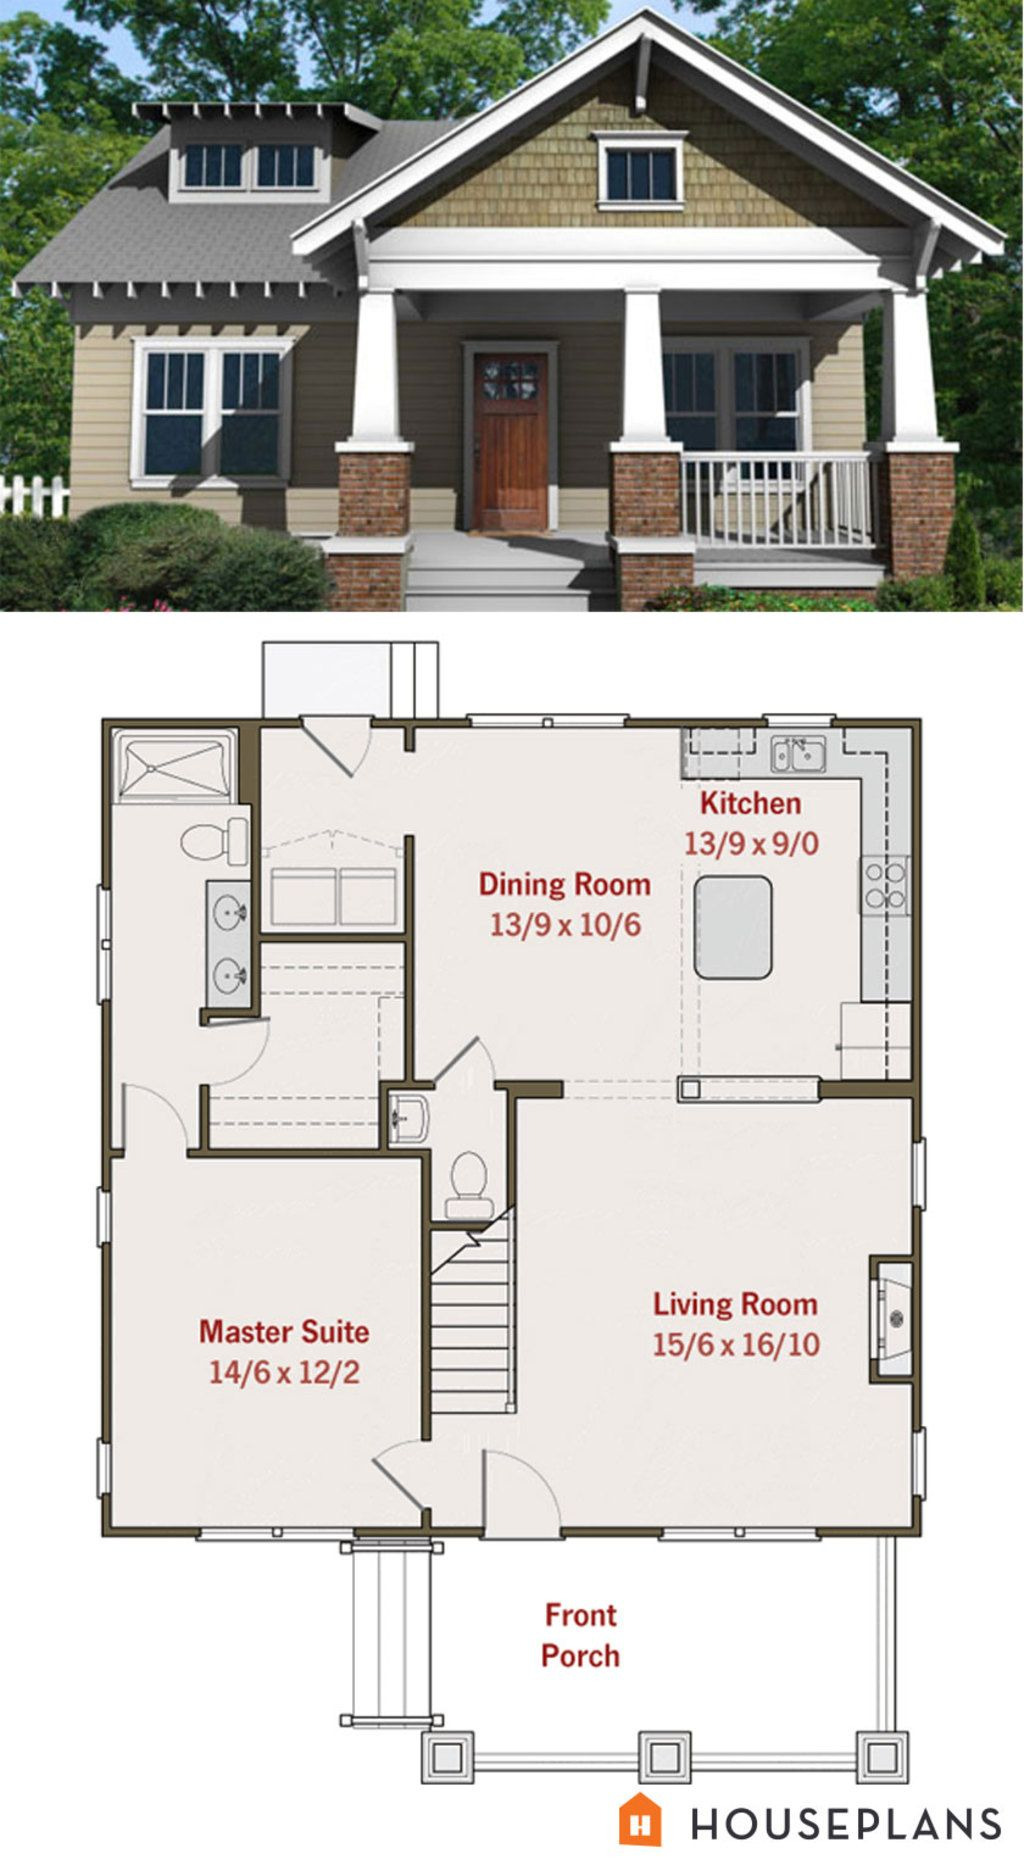 Best Small House Plans Elegant Craftsman Style House Plan 3 Beds 2 5 Baths 1584 Sq Ft